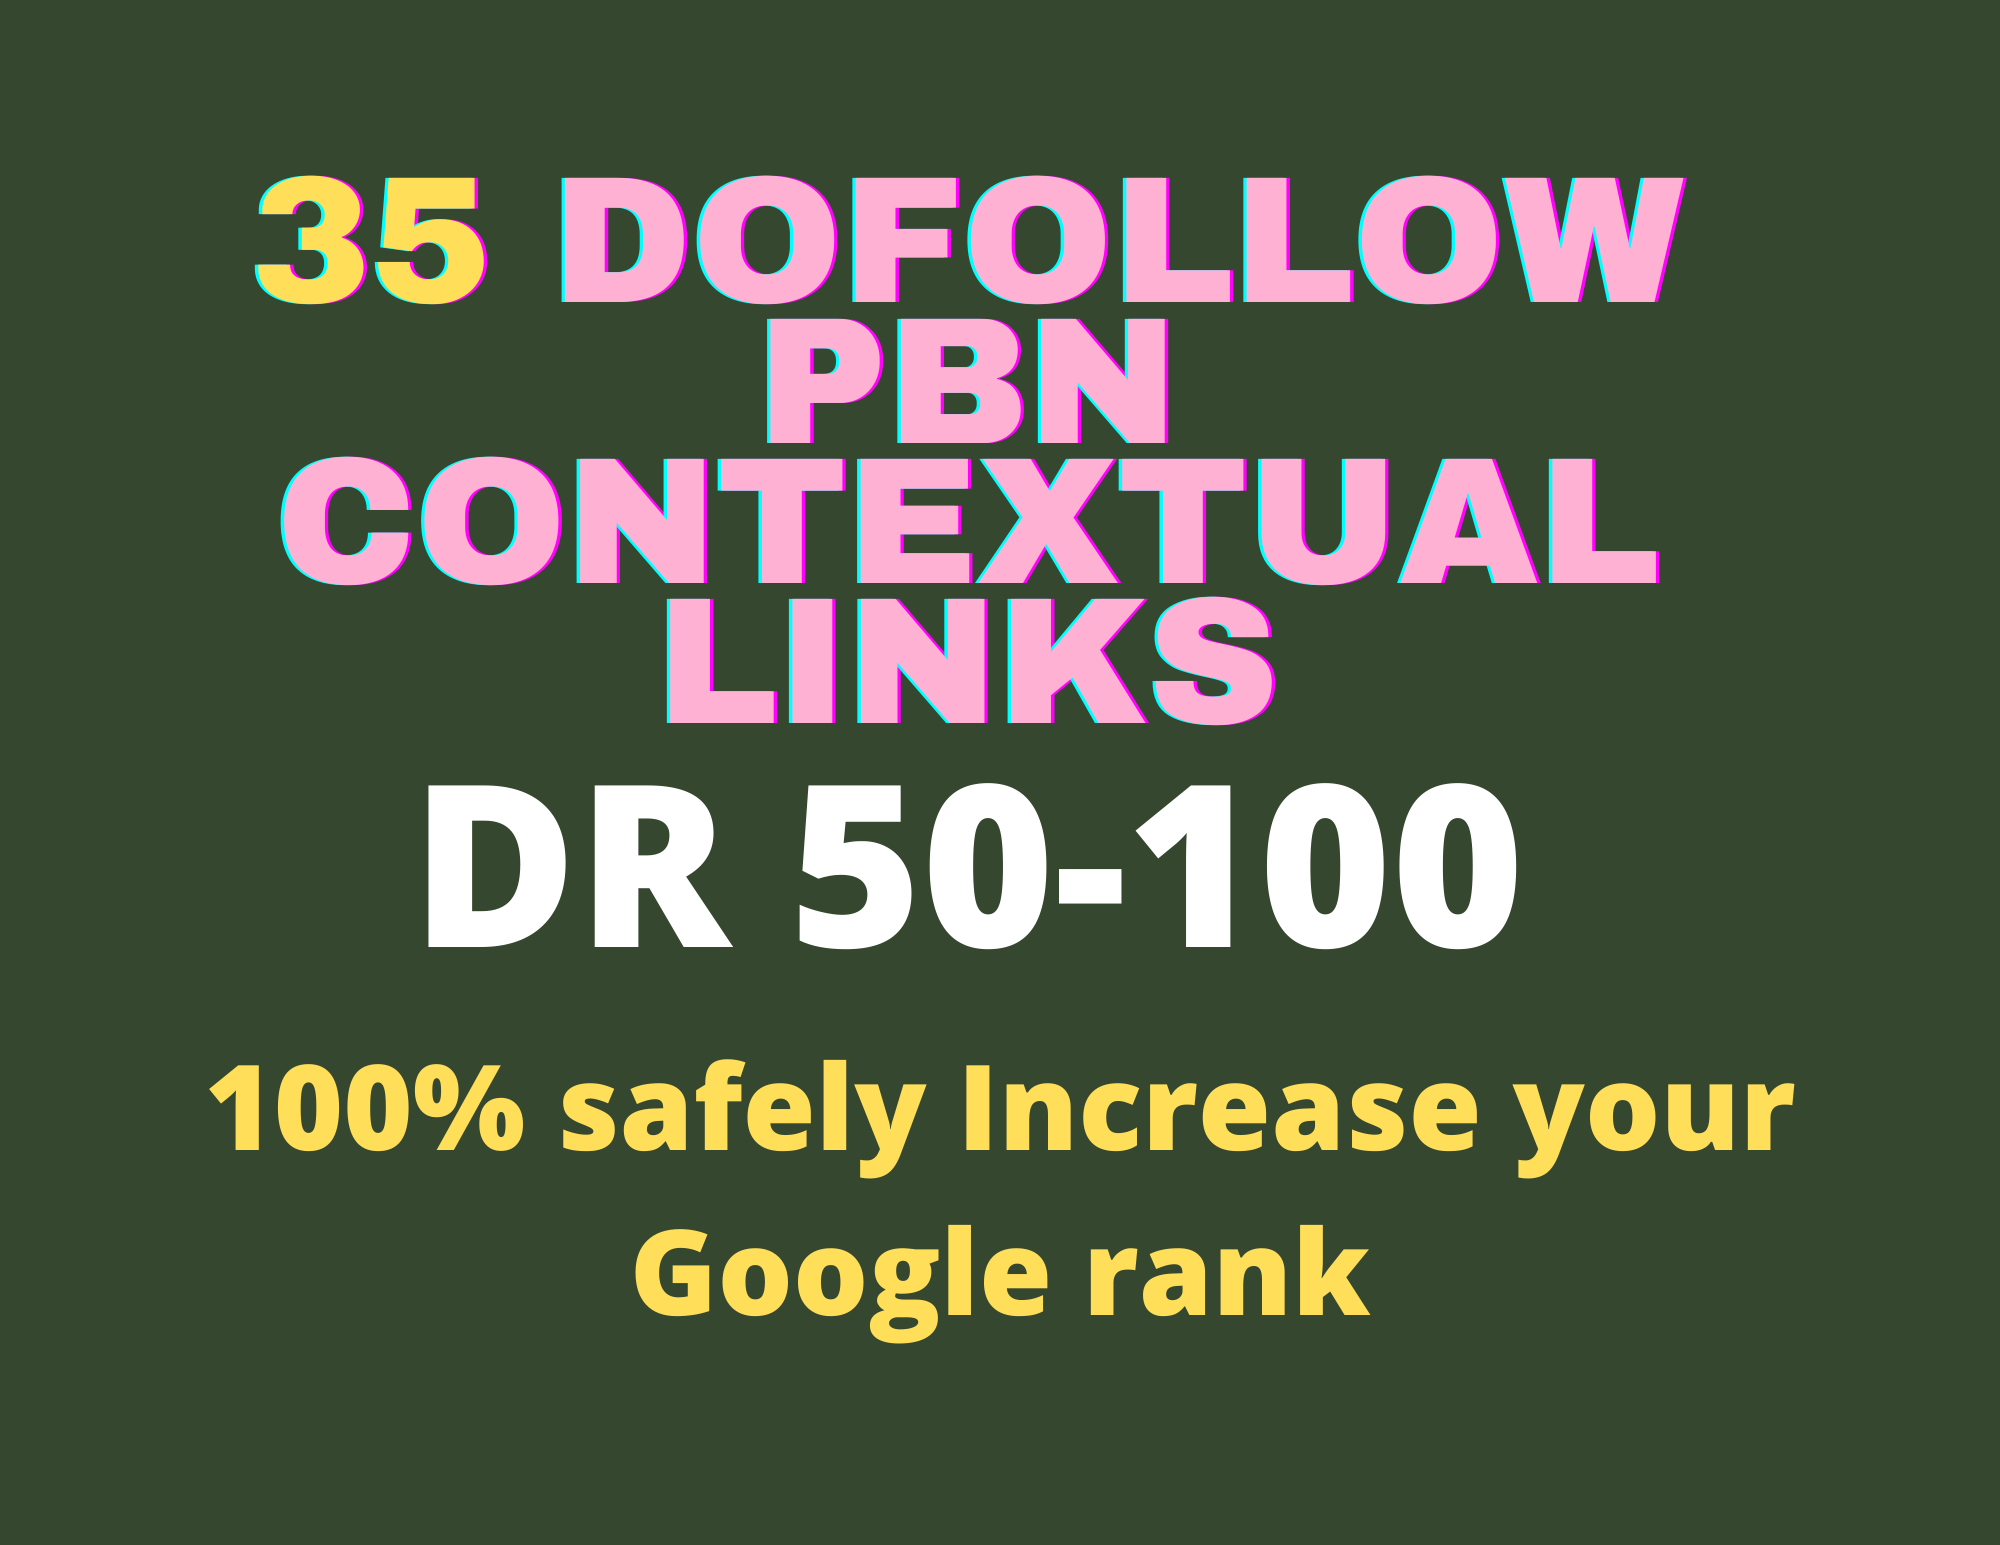 Dofollow 35 PBNs Backlinks DR 100 to 50 - Definitely skyrocket your Google Ranking